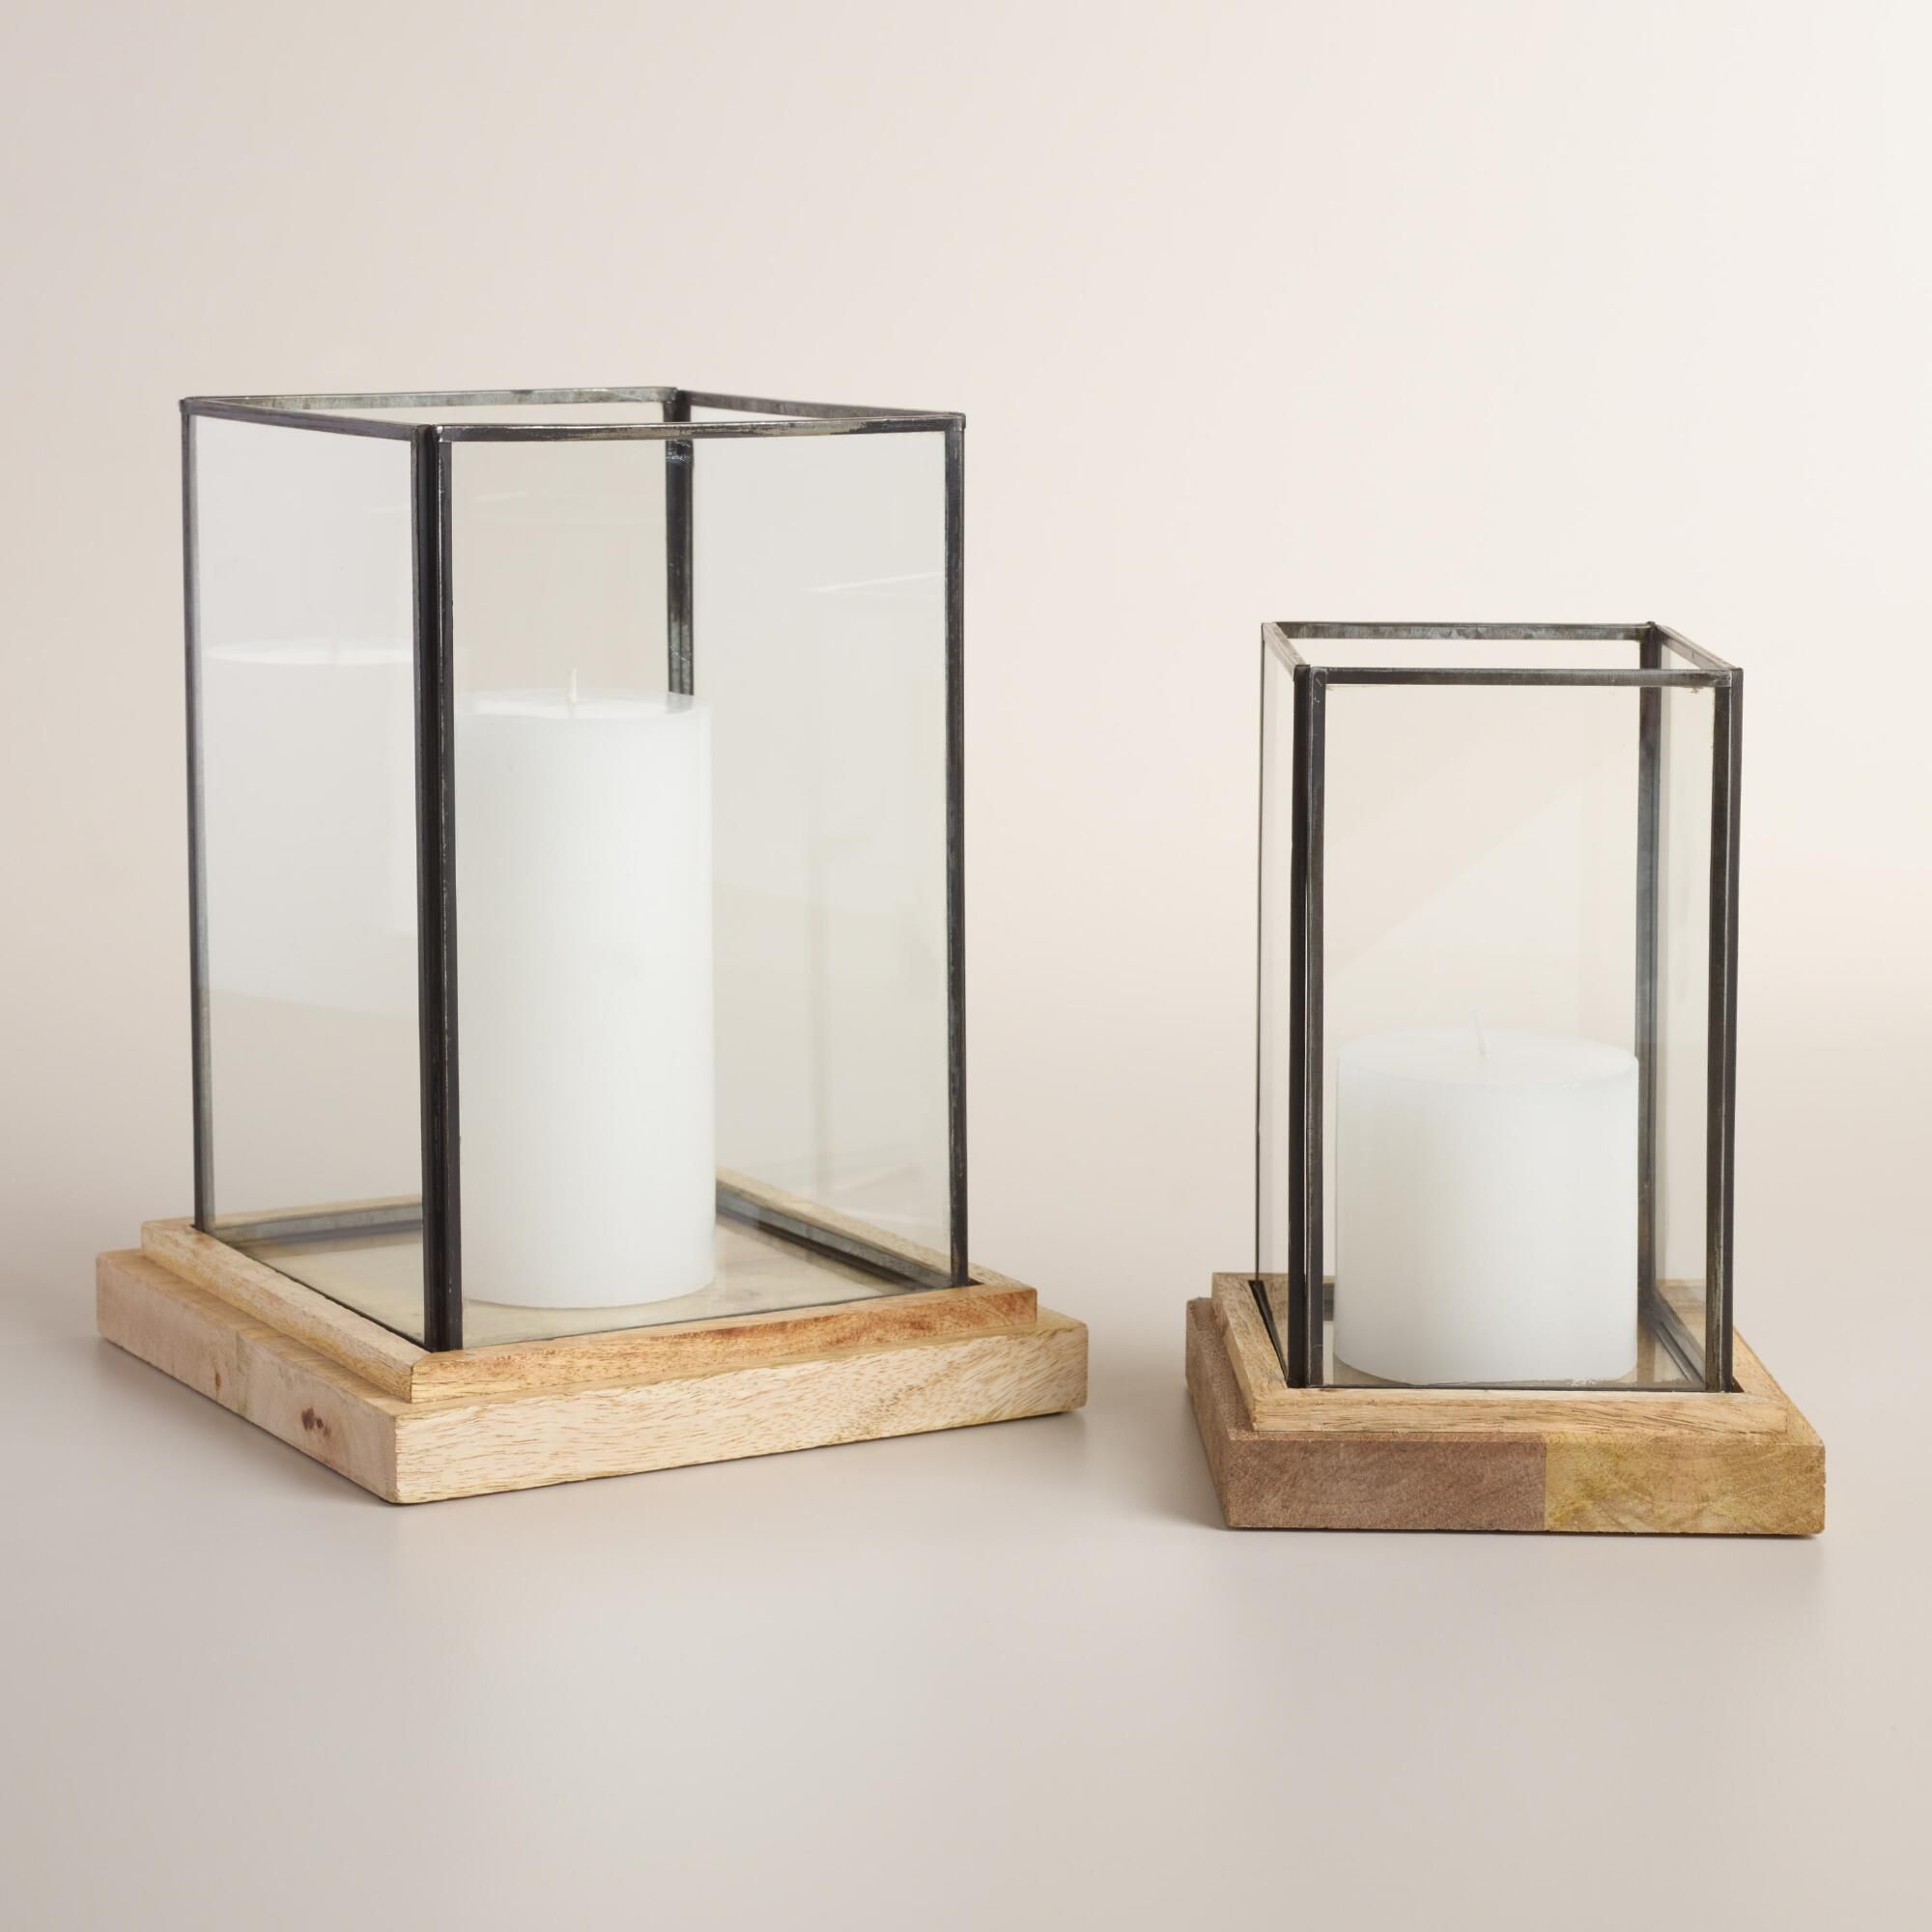 Square Wood Base Hurricane Square Glass Candle Holder Table Decor Living Room Square Candle Holders